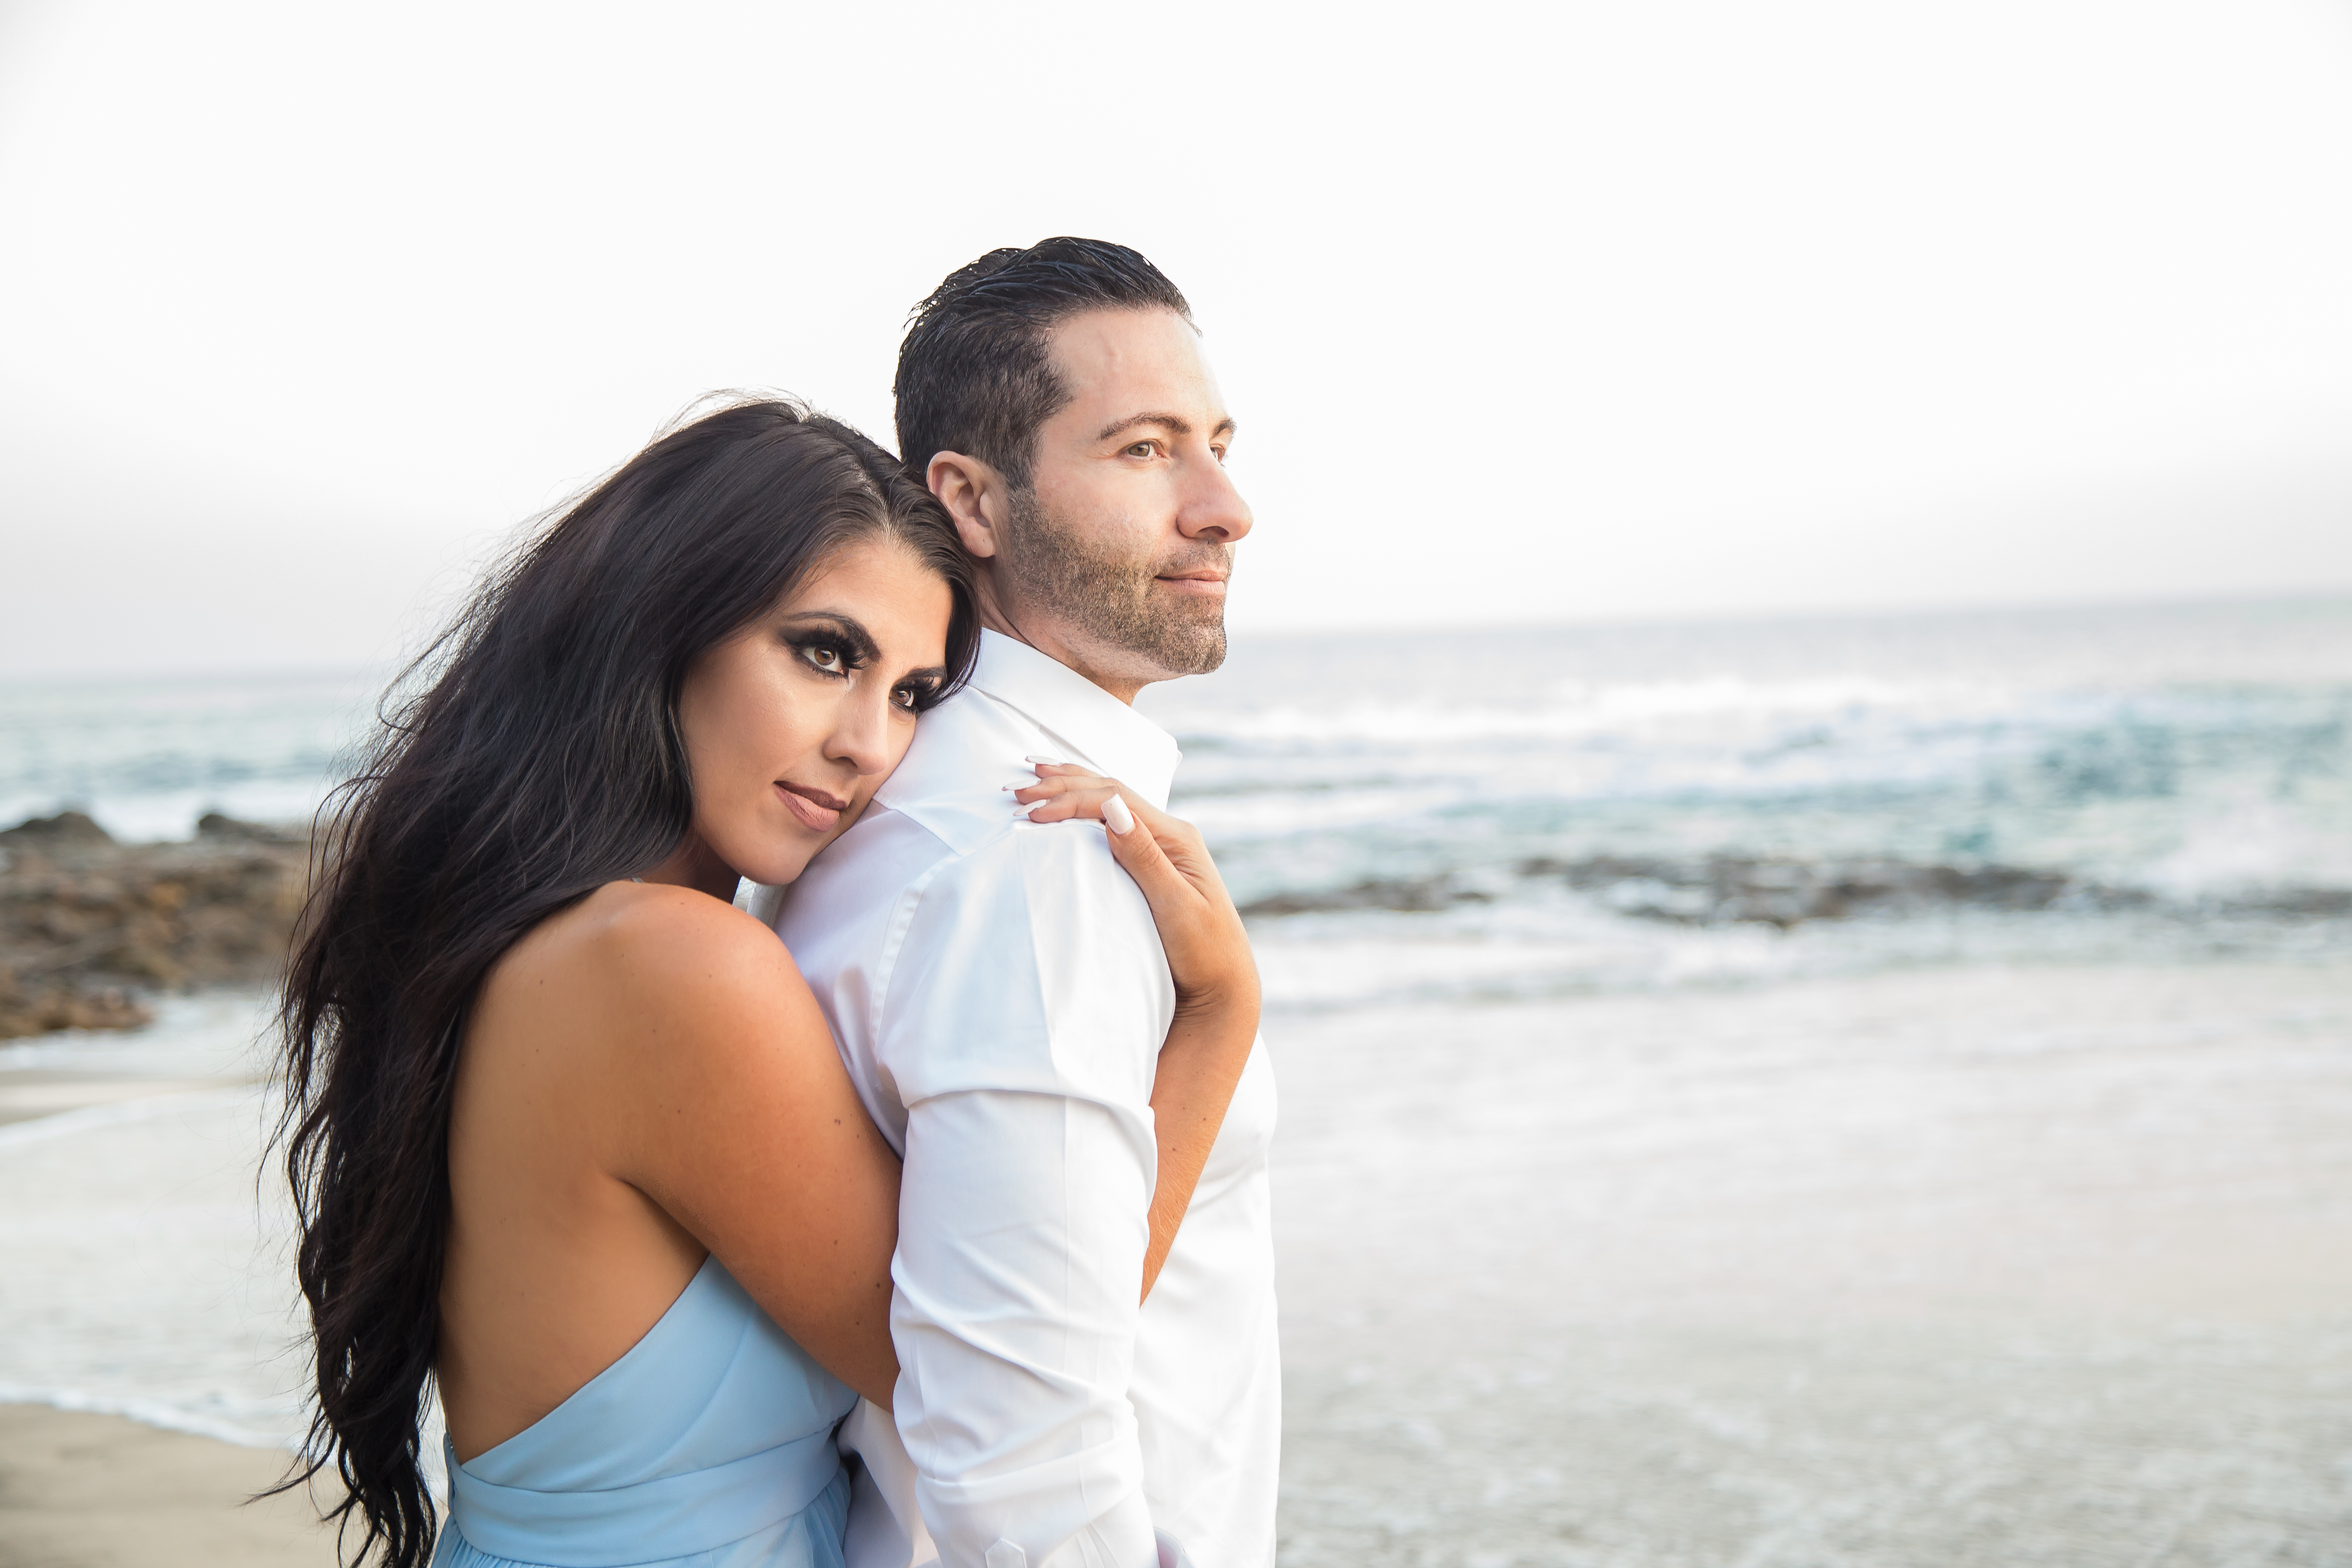 photo style image engagement on the beach